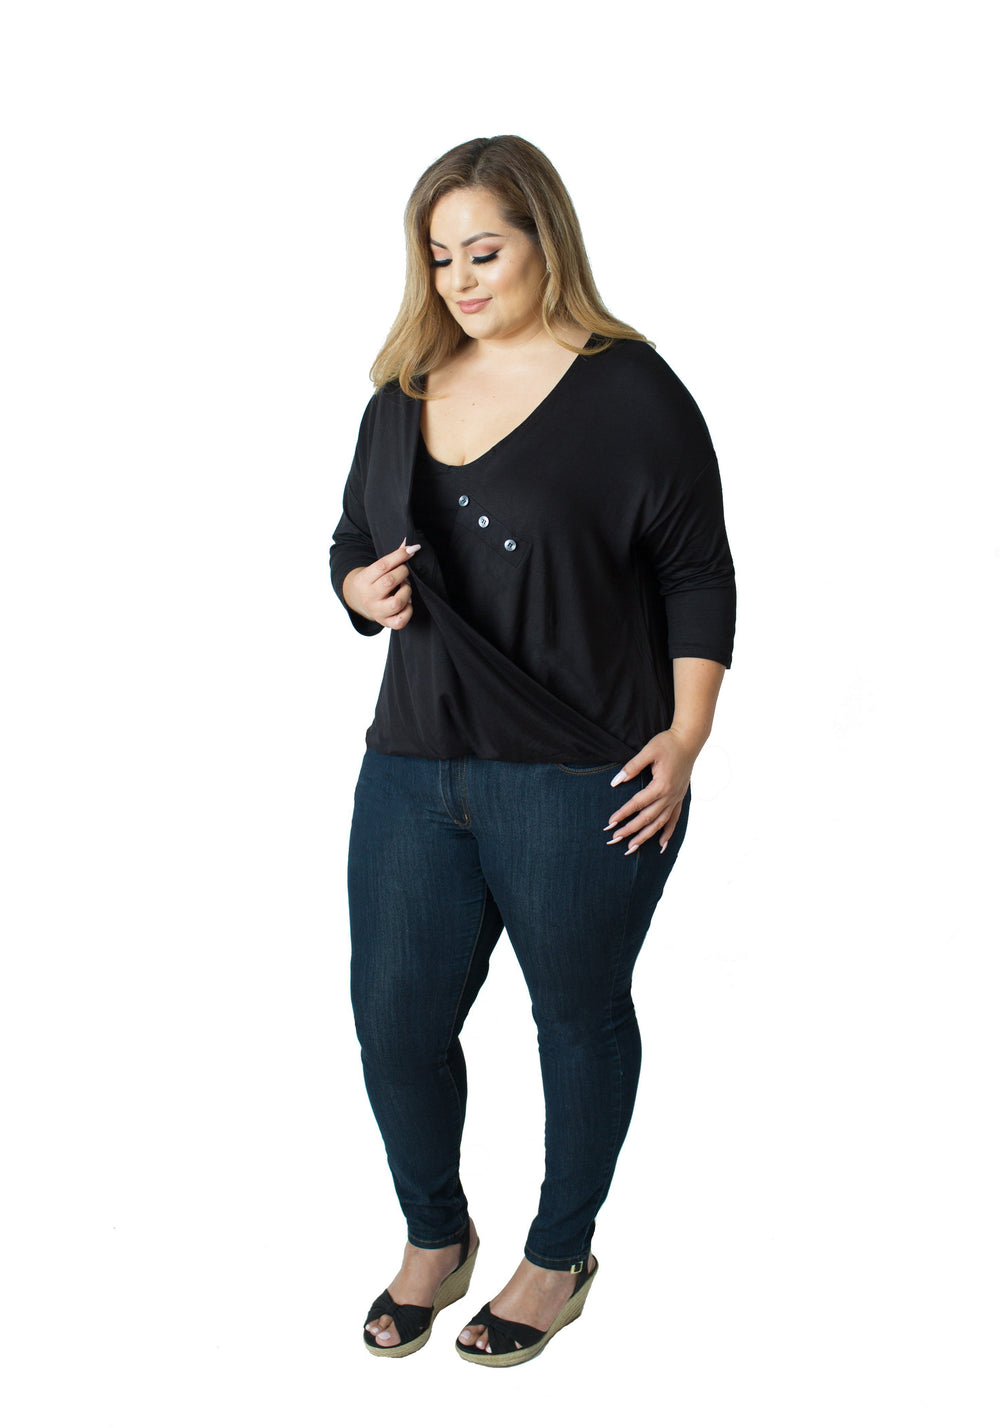 Talia Nursing Top - Black